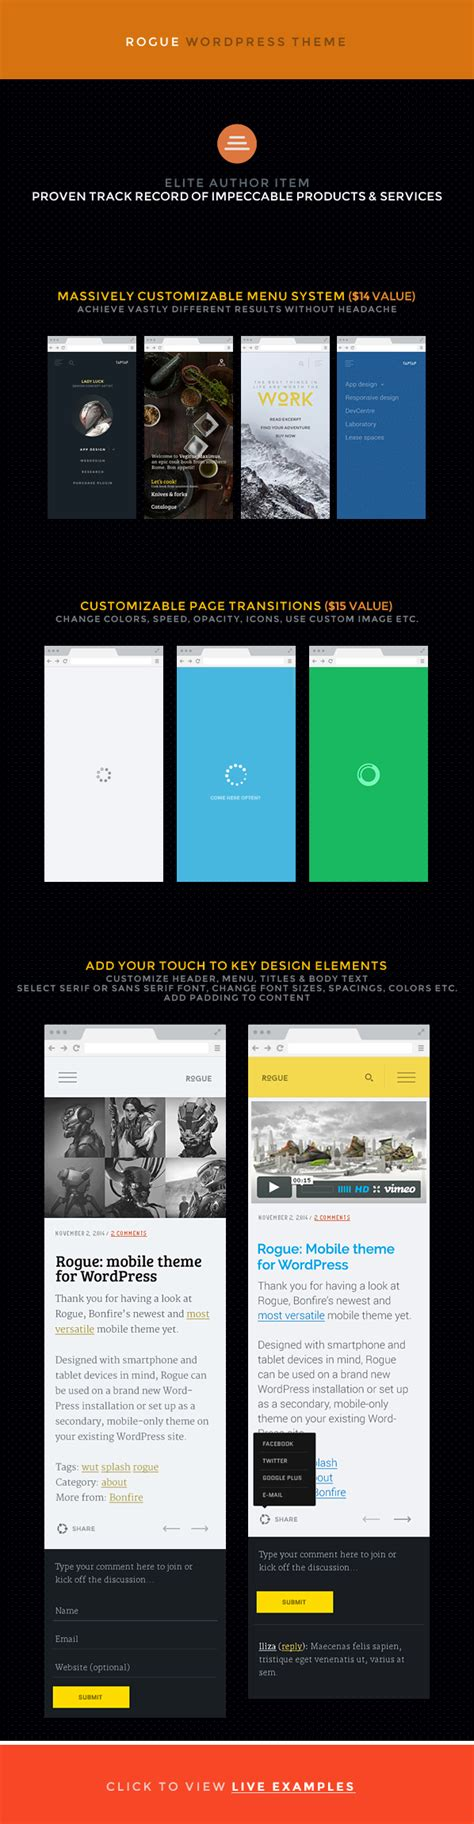 mobile themes themeforest rogue customizable mobile theme for wordpress by